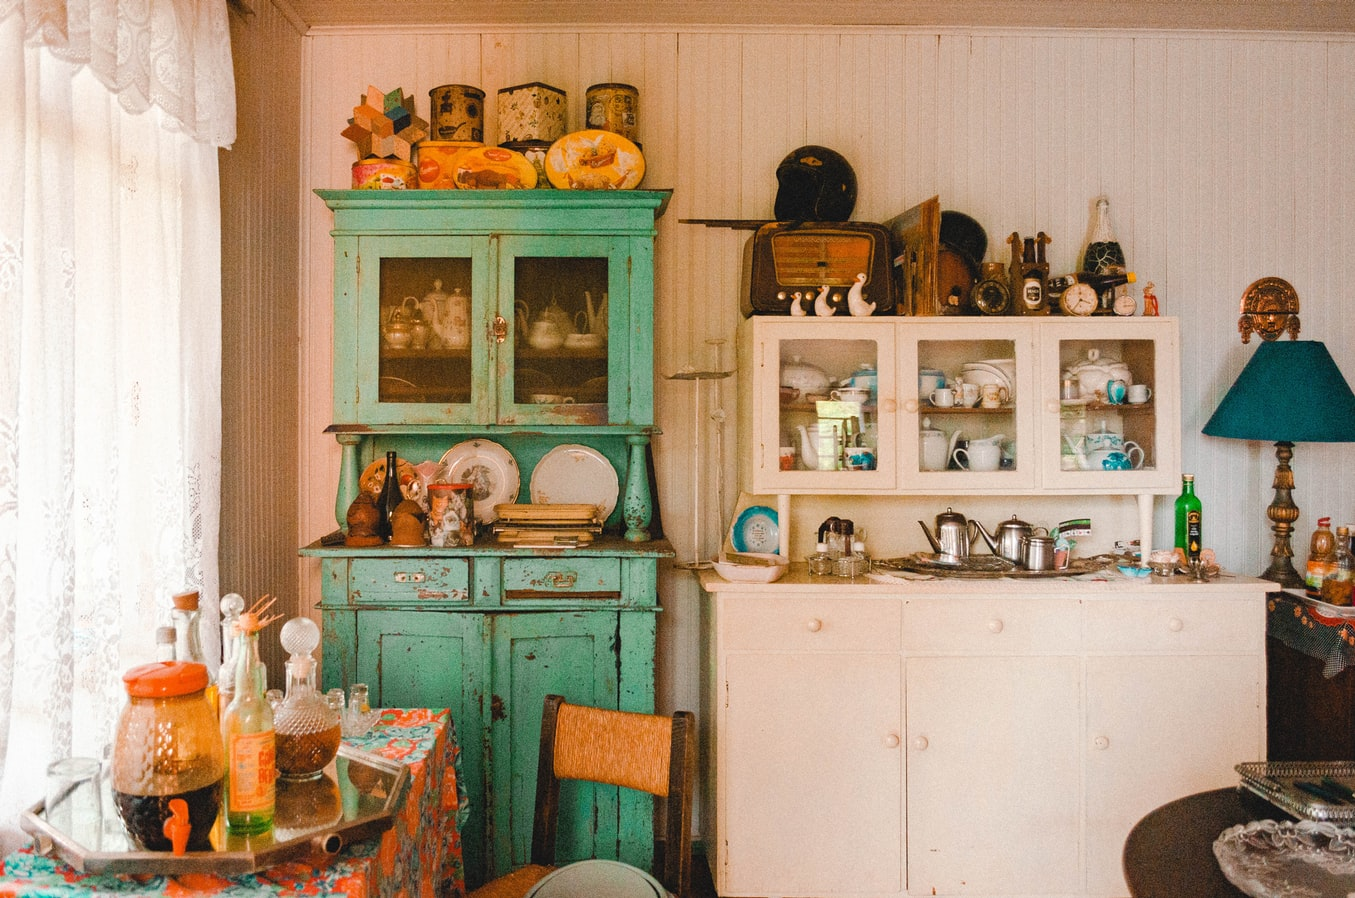 Declutter Your Home: What To Get Rid Of